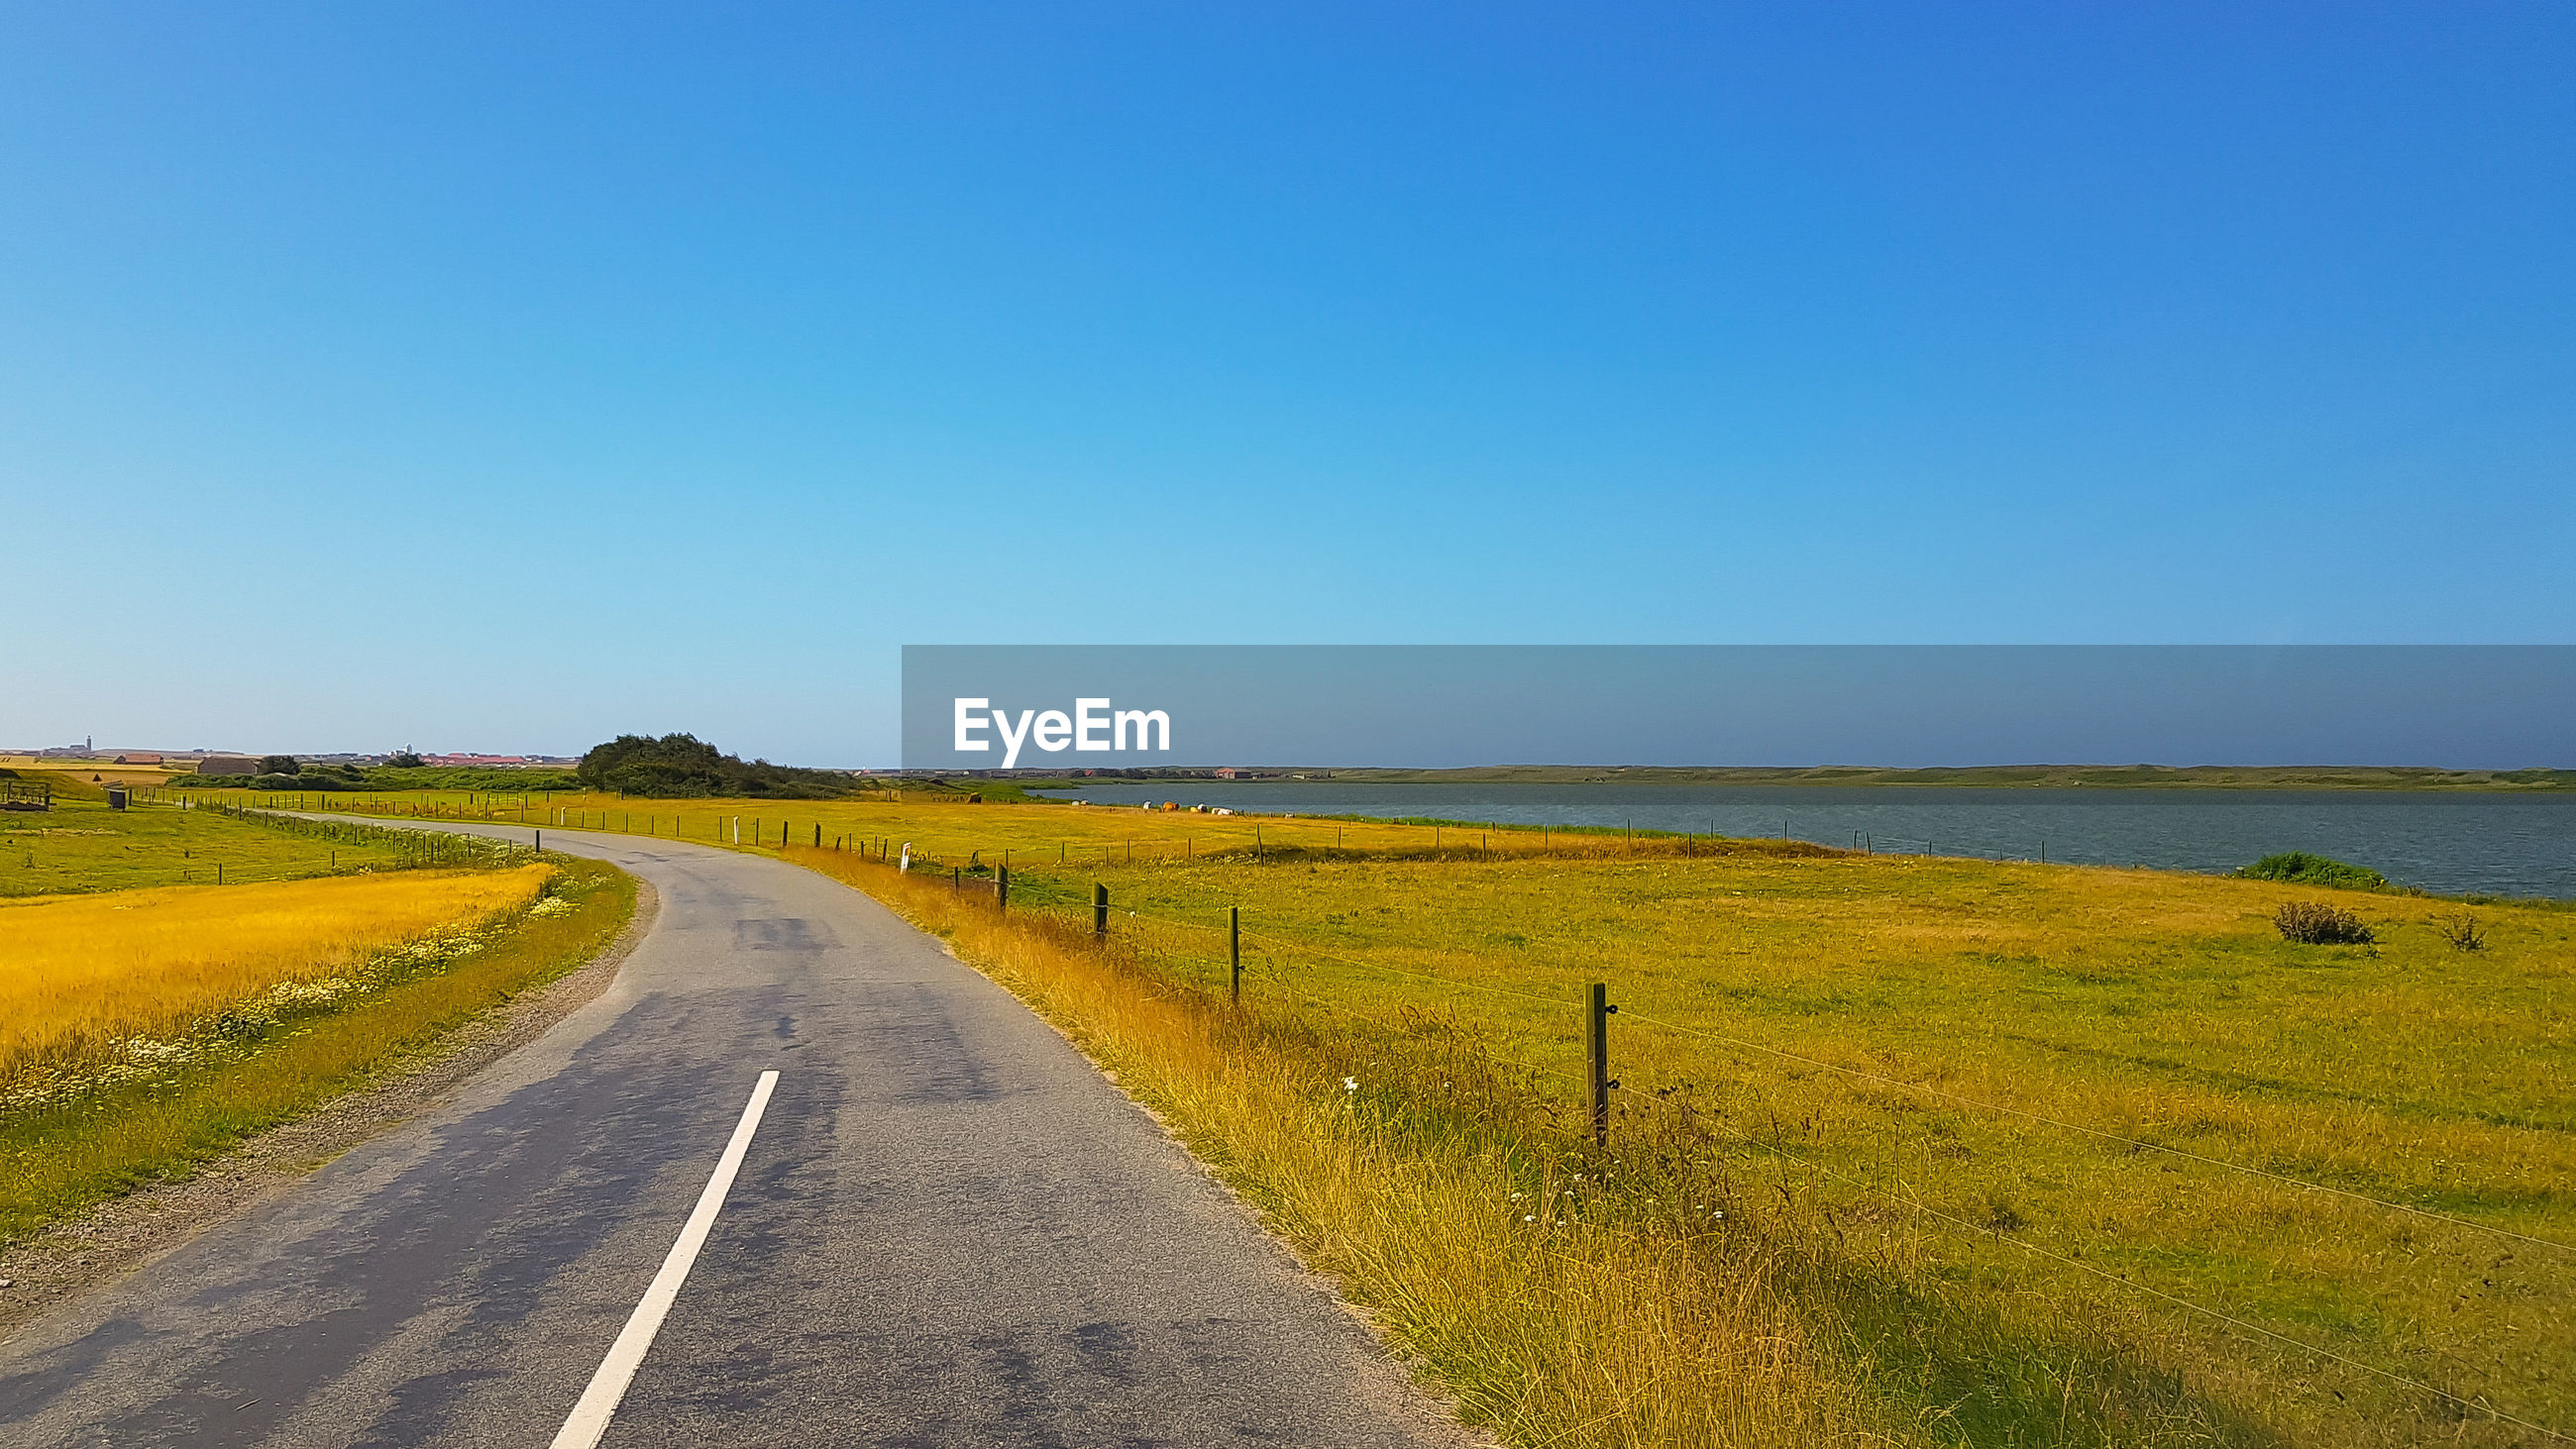 EMPTY ROAD ALONG COUNTRYSIDE LANDSCAPE AGAINST CLEAR BLUE SKY